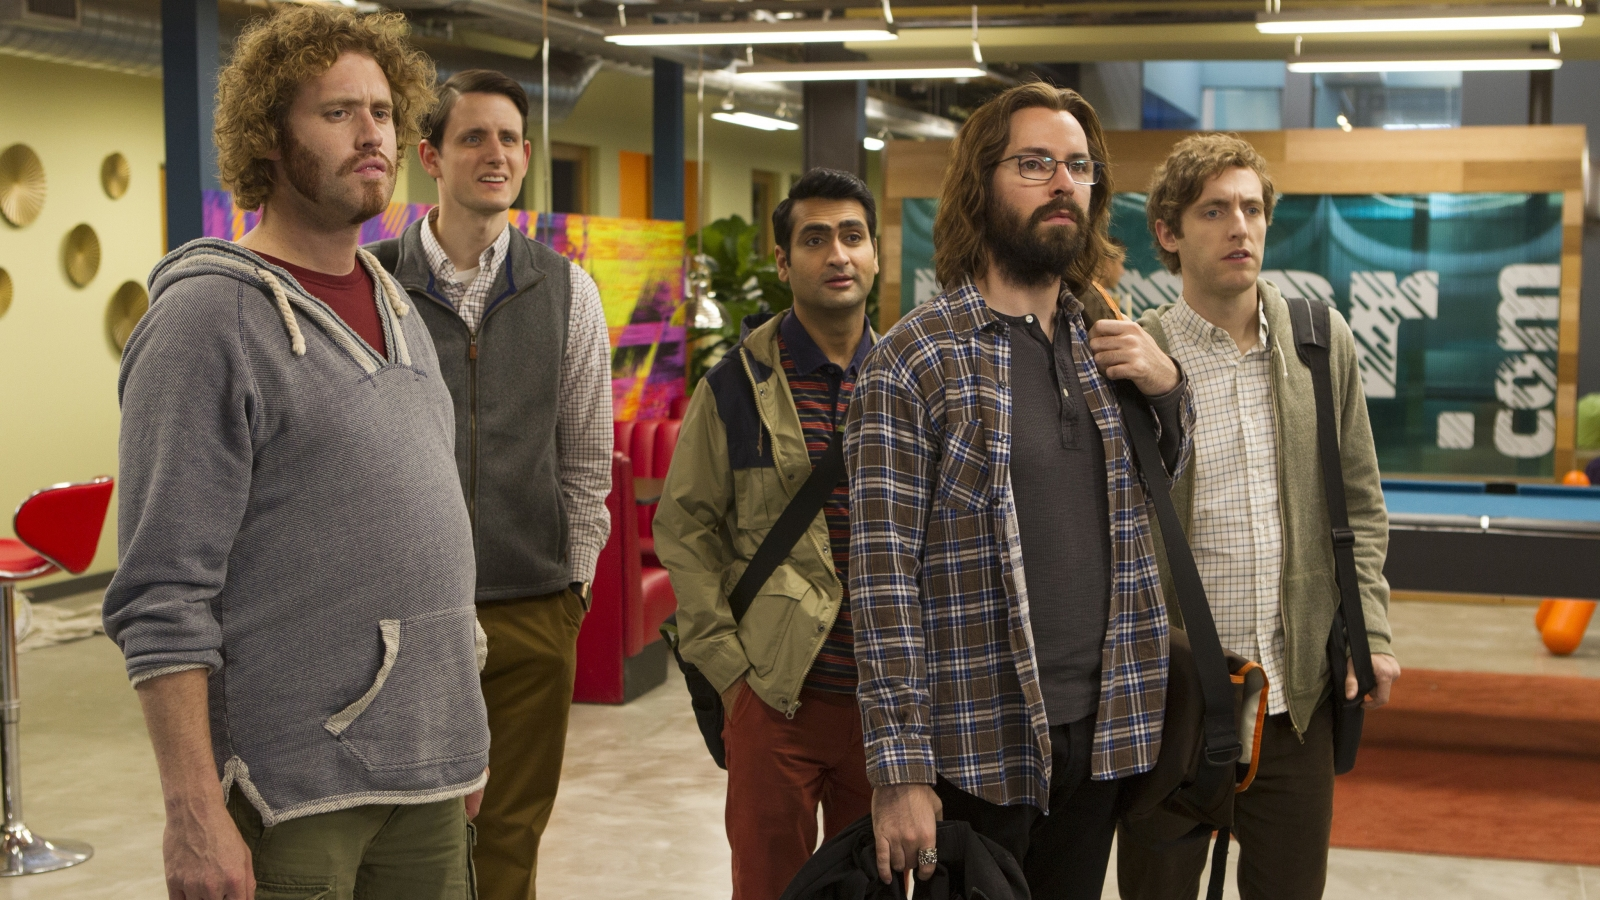 HBO's Silicon Valley TV drama